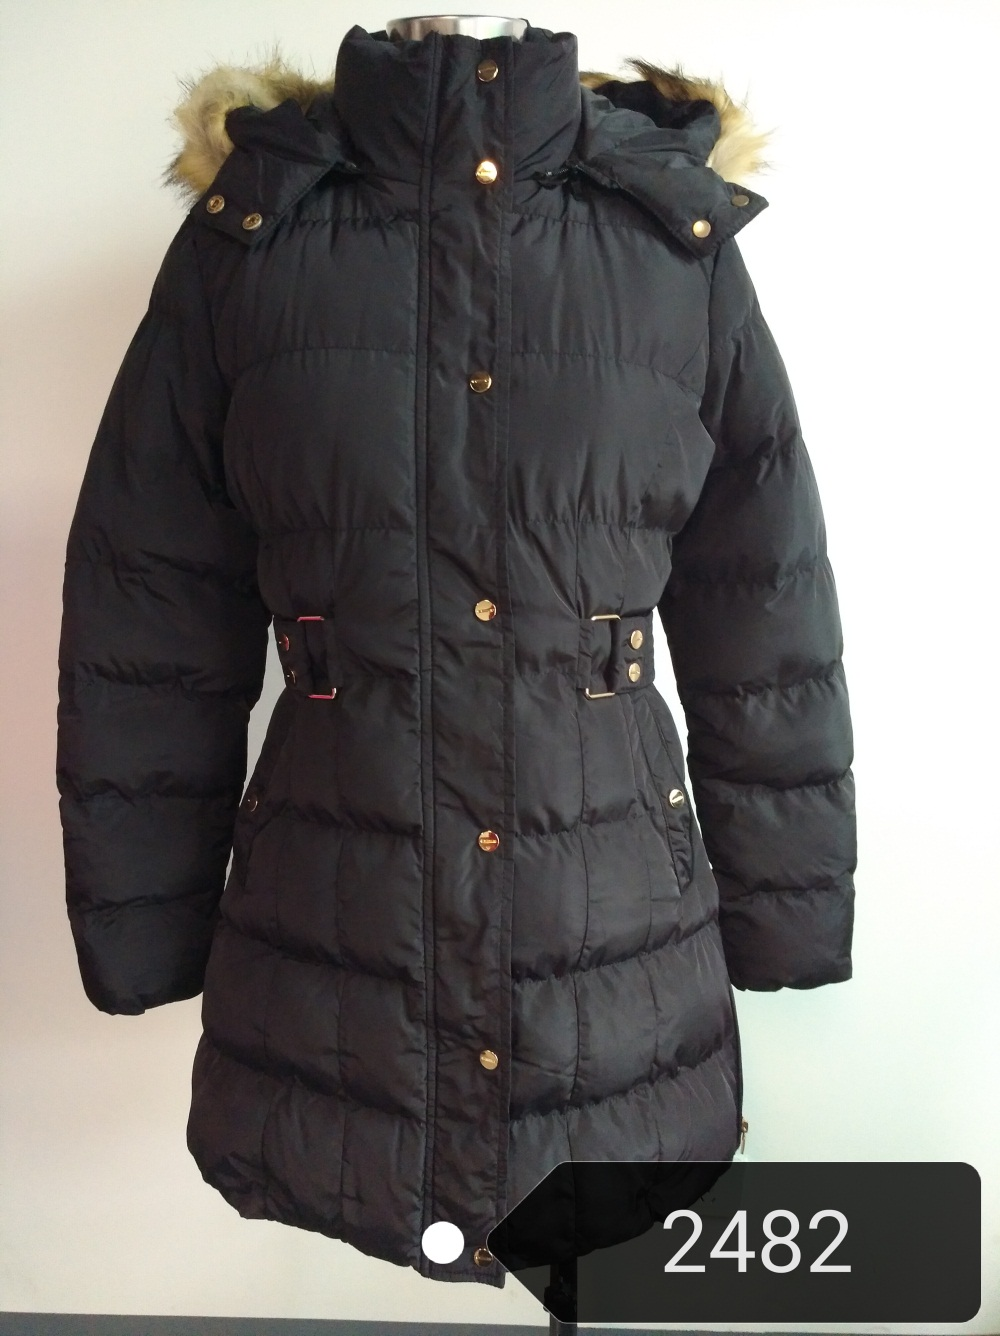 women jacket,fashion jacket,latest winter jacket for women 2482